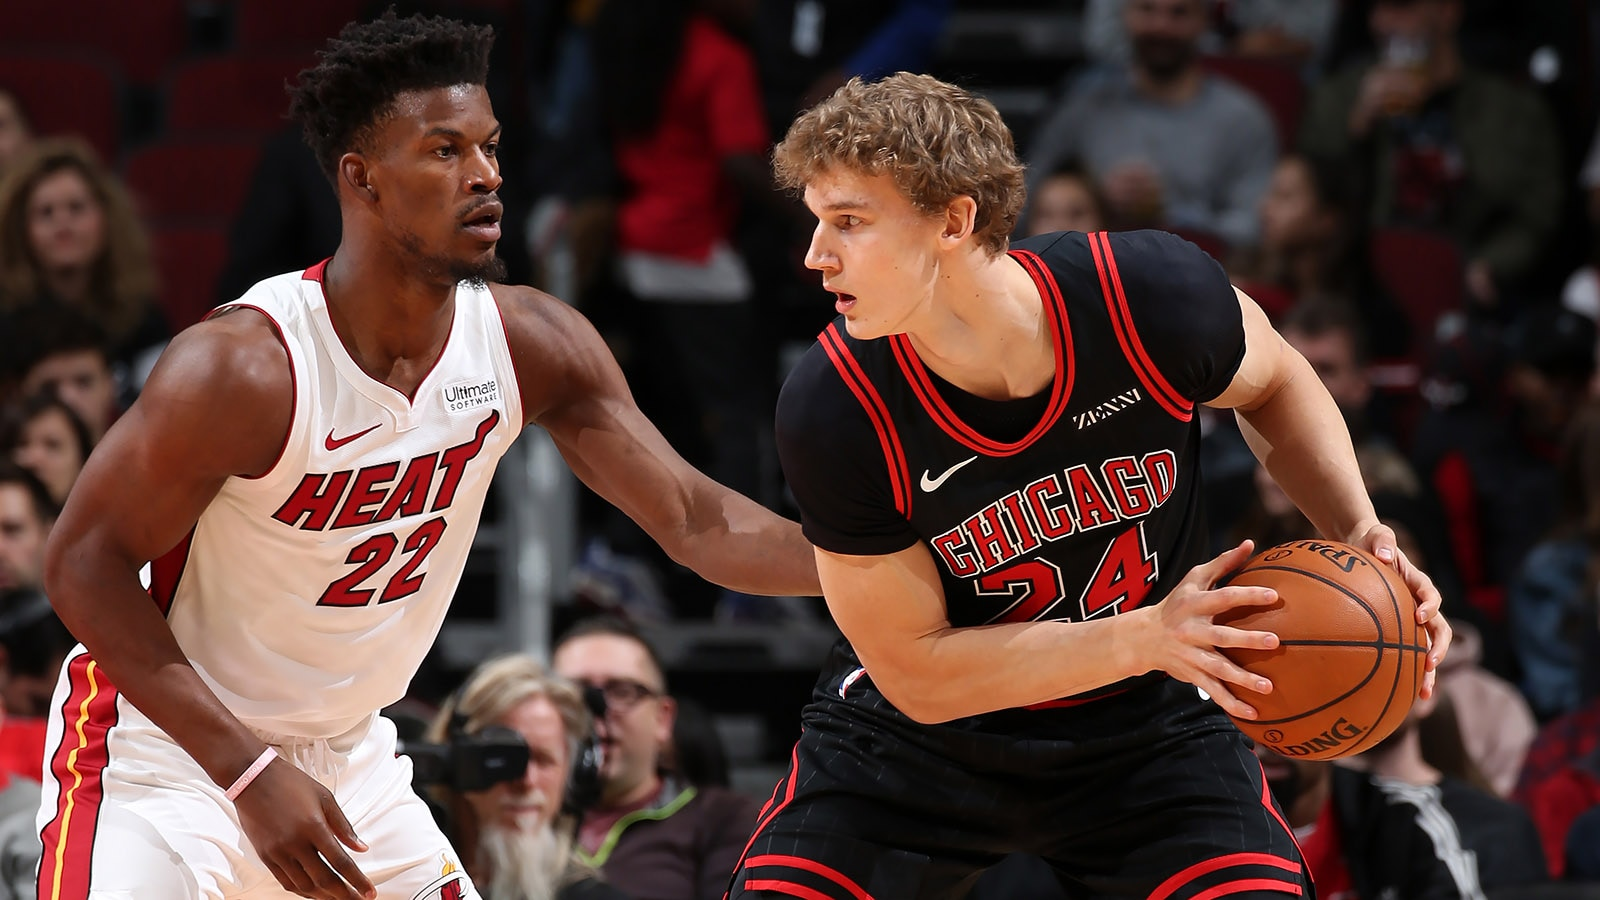 Lauri Markkanen against Jimmy Butler